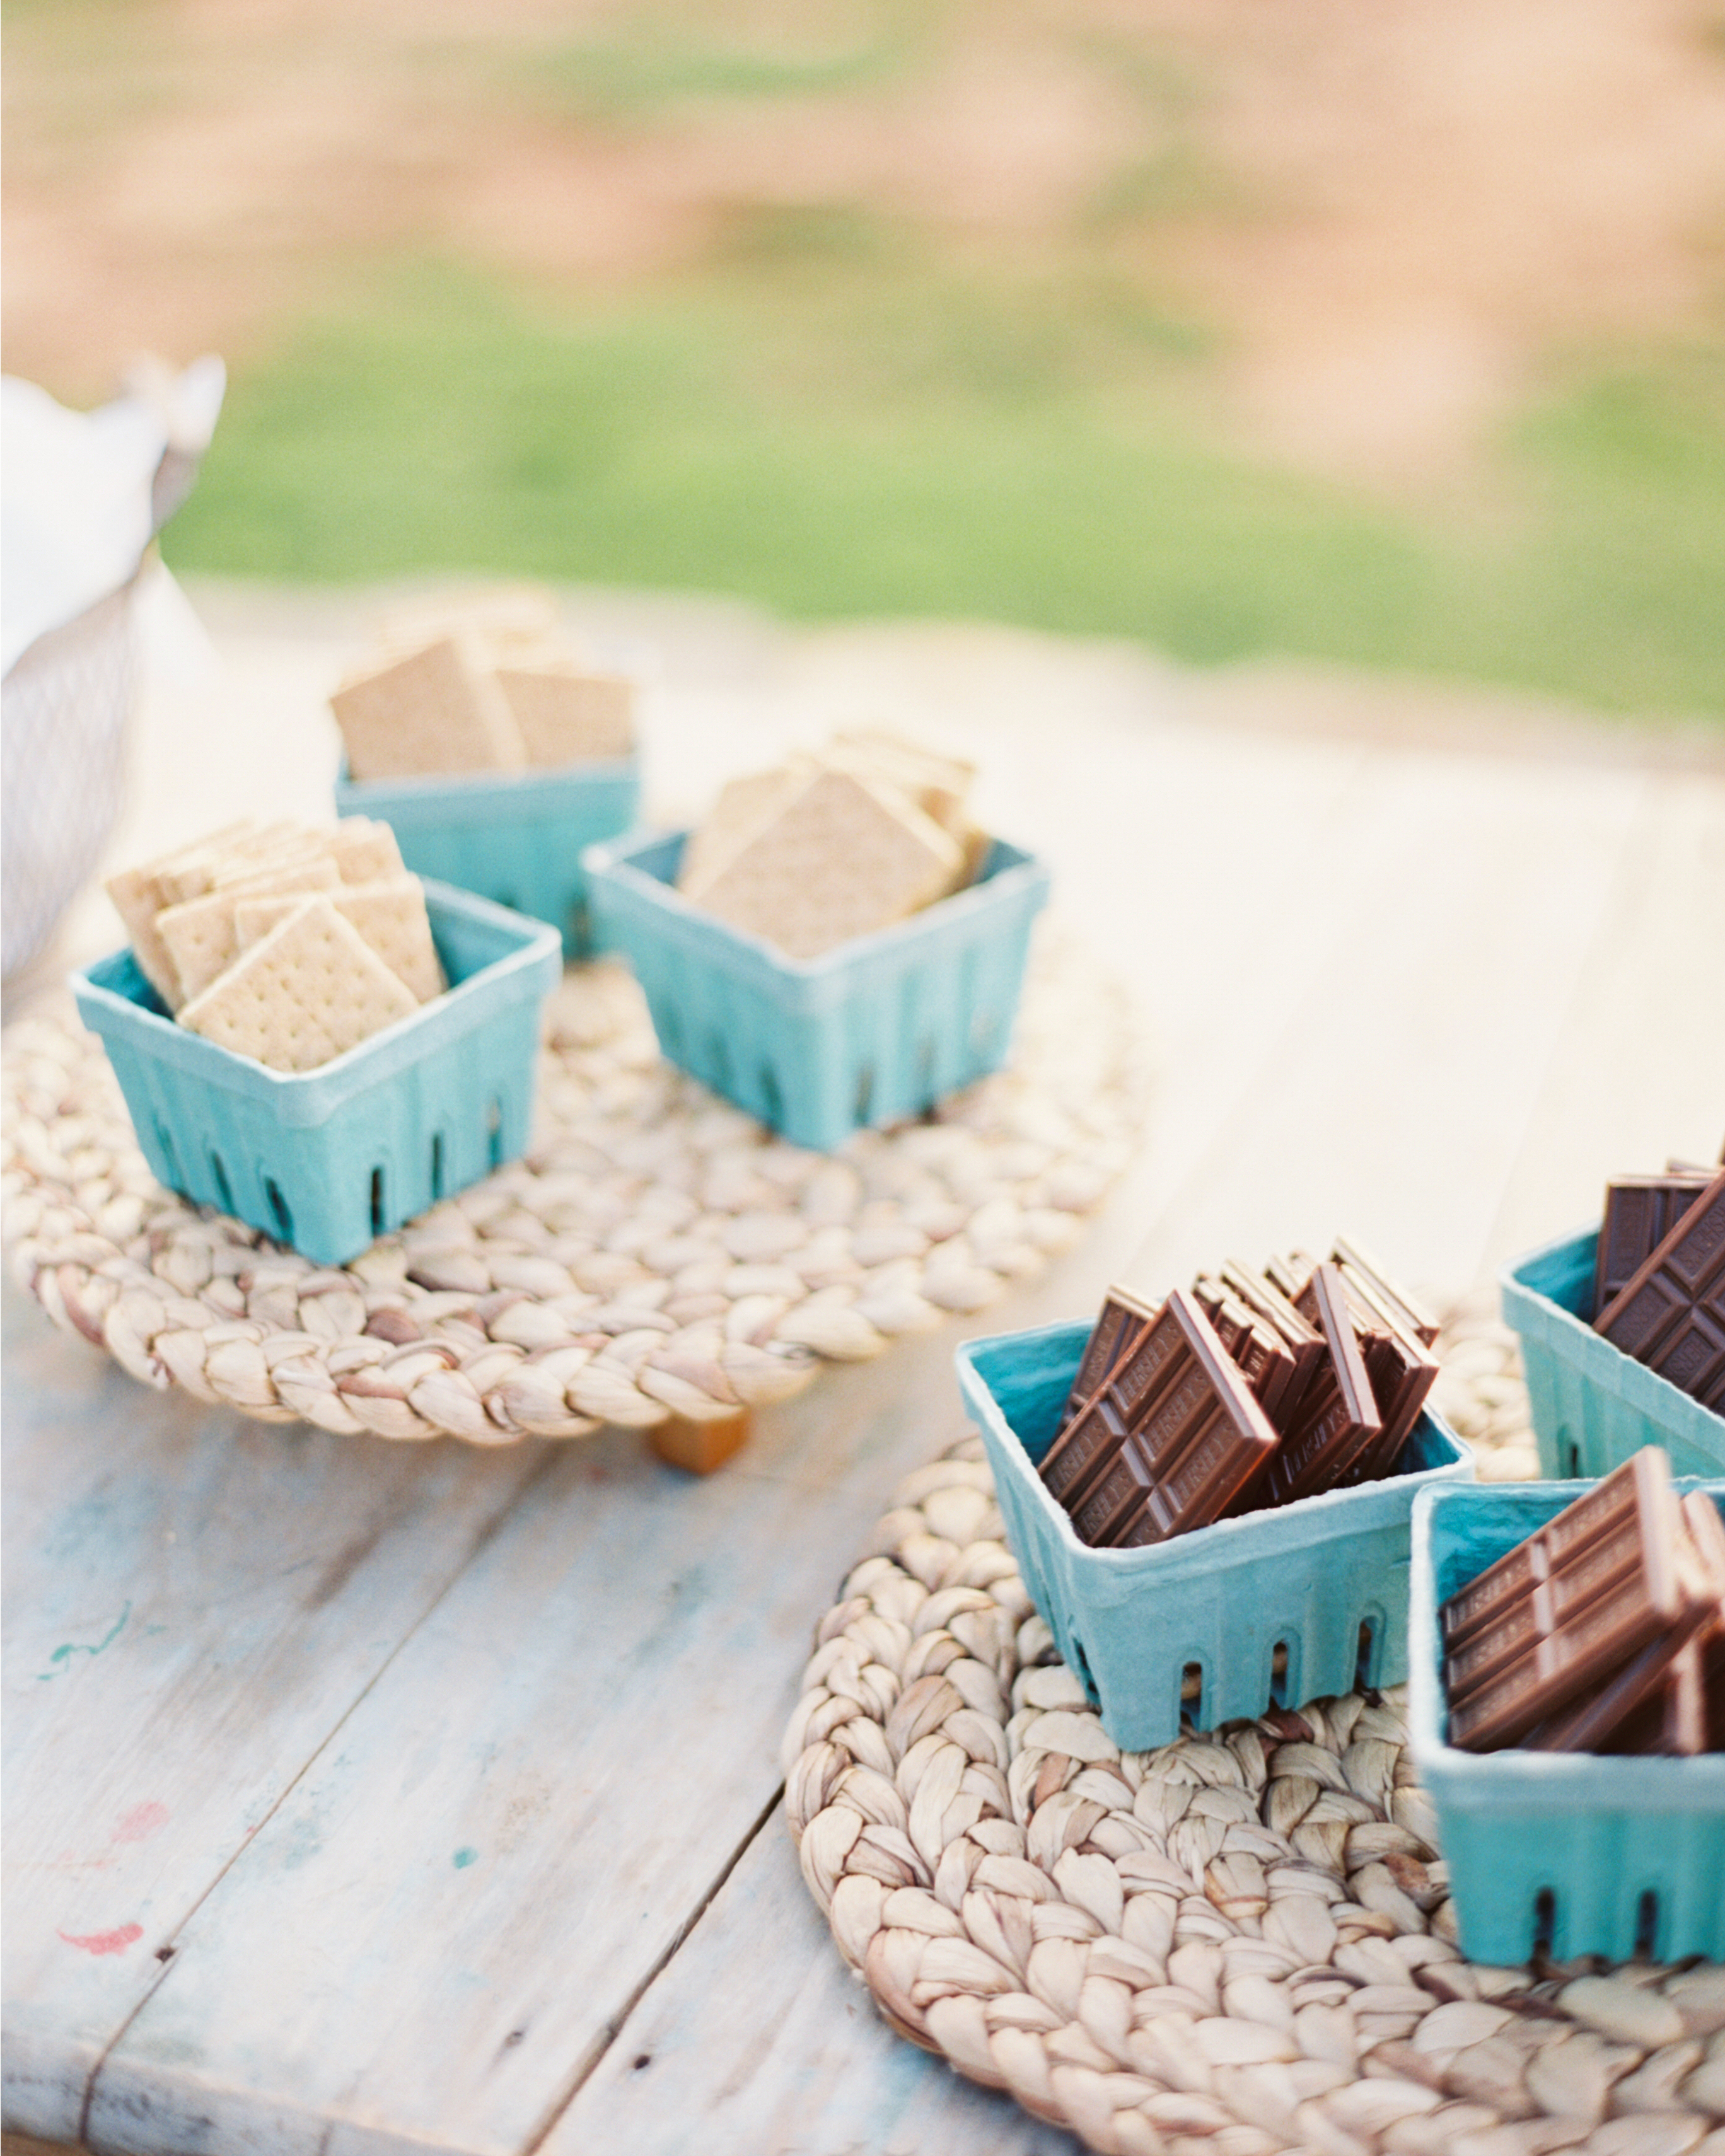 S'mores in Baskets